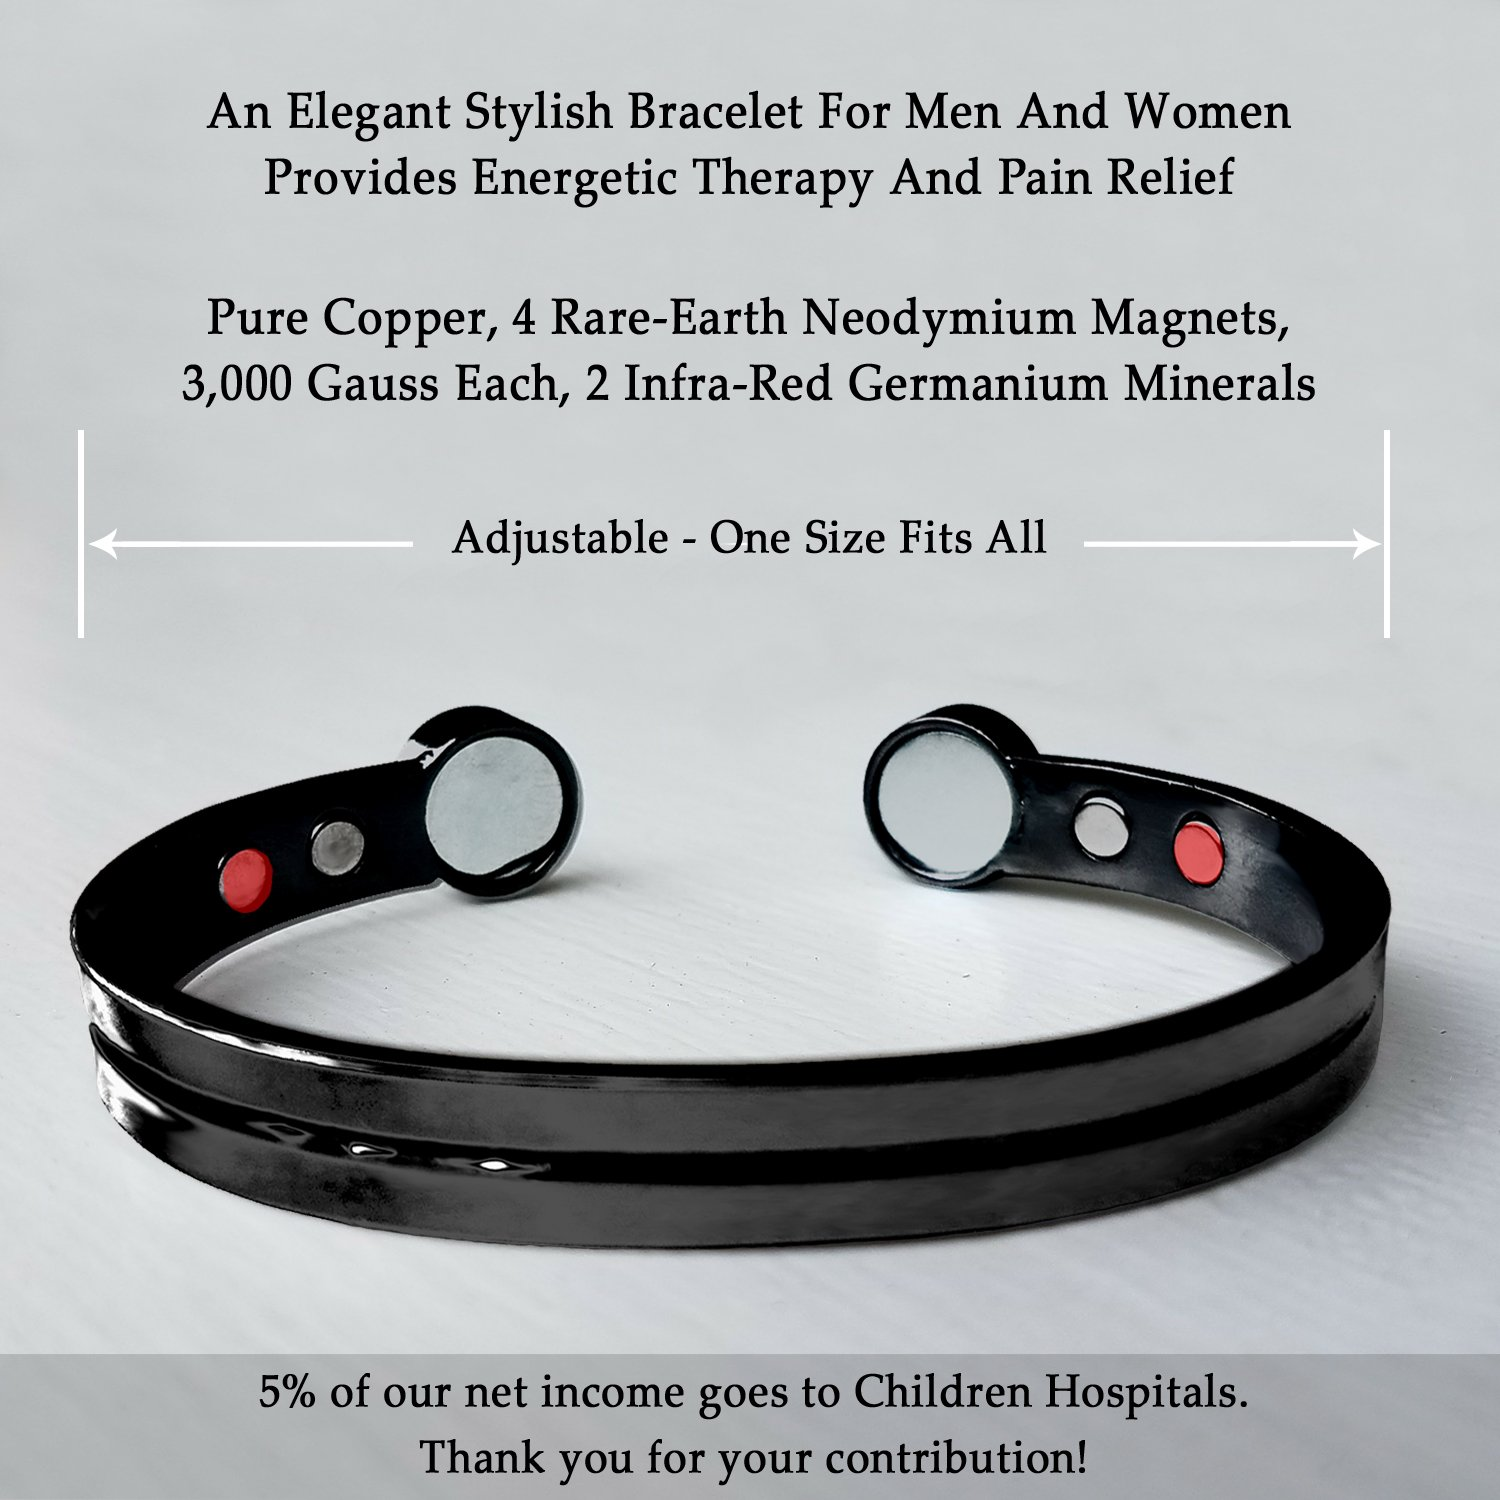 Sufferers wear copper jewelry in the hopes of easing symptoms - Amazon Com Rheumatoid Arthritis Symptoms Pain Relief Fashion Jewelry Bracelets Neodymium Magnetic Infrared Therapy Jewelry